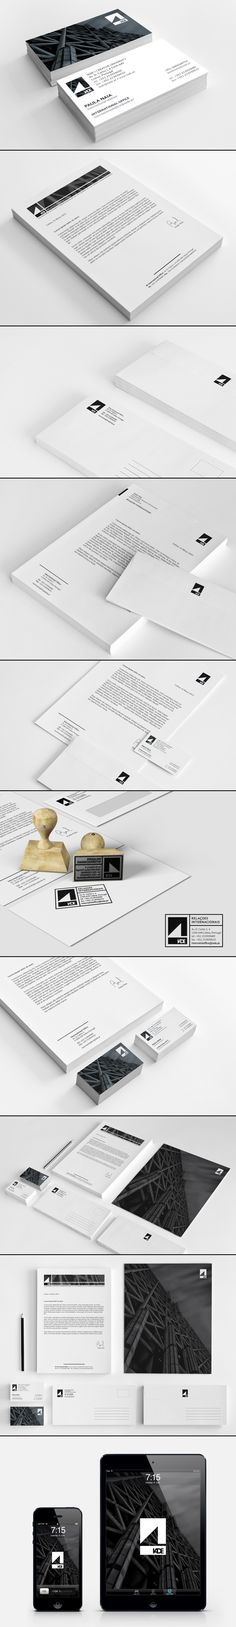 IADE • Relaçoes Internacionais • Corporate Identity